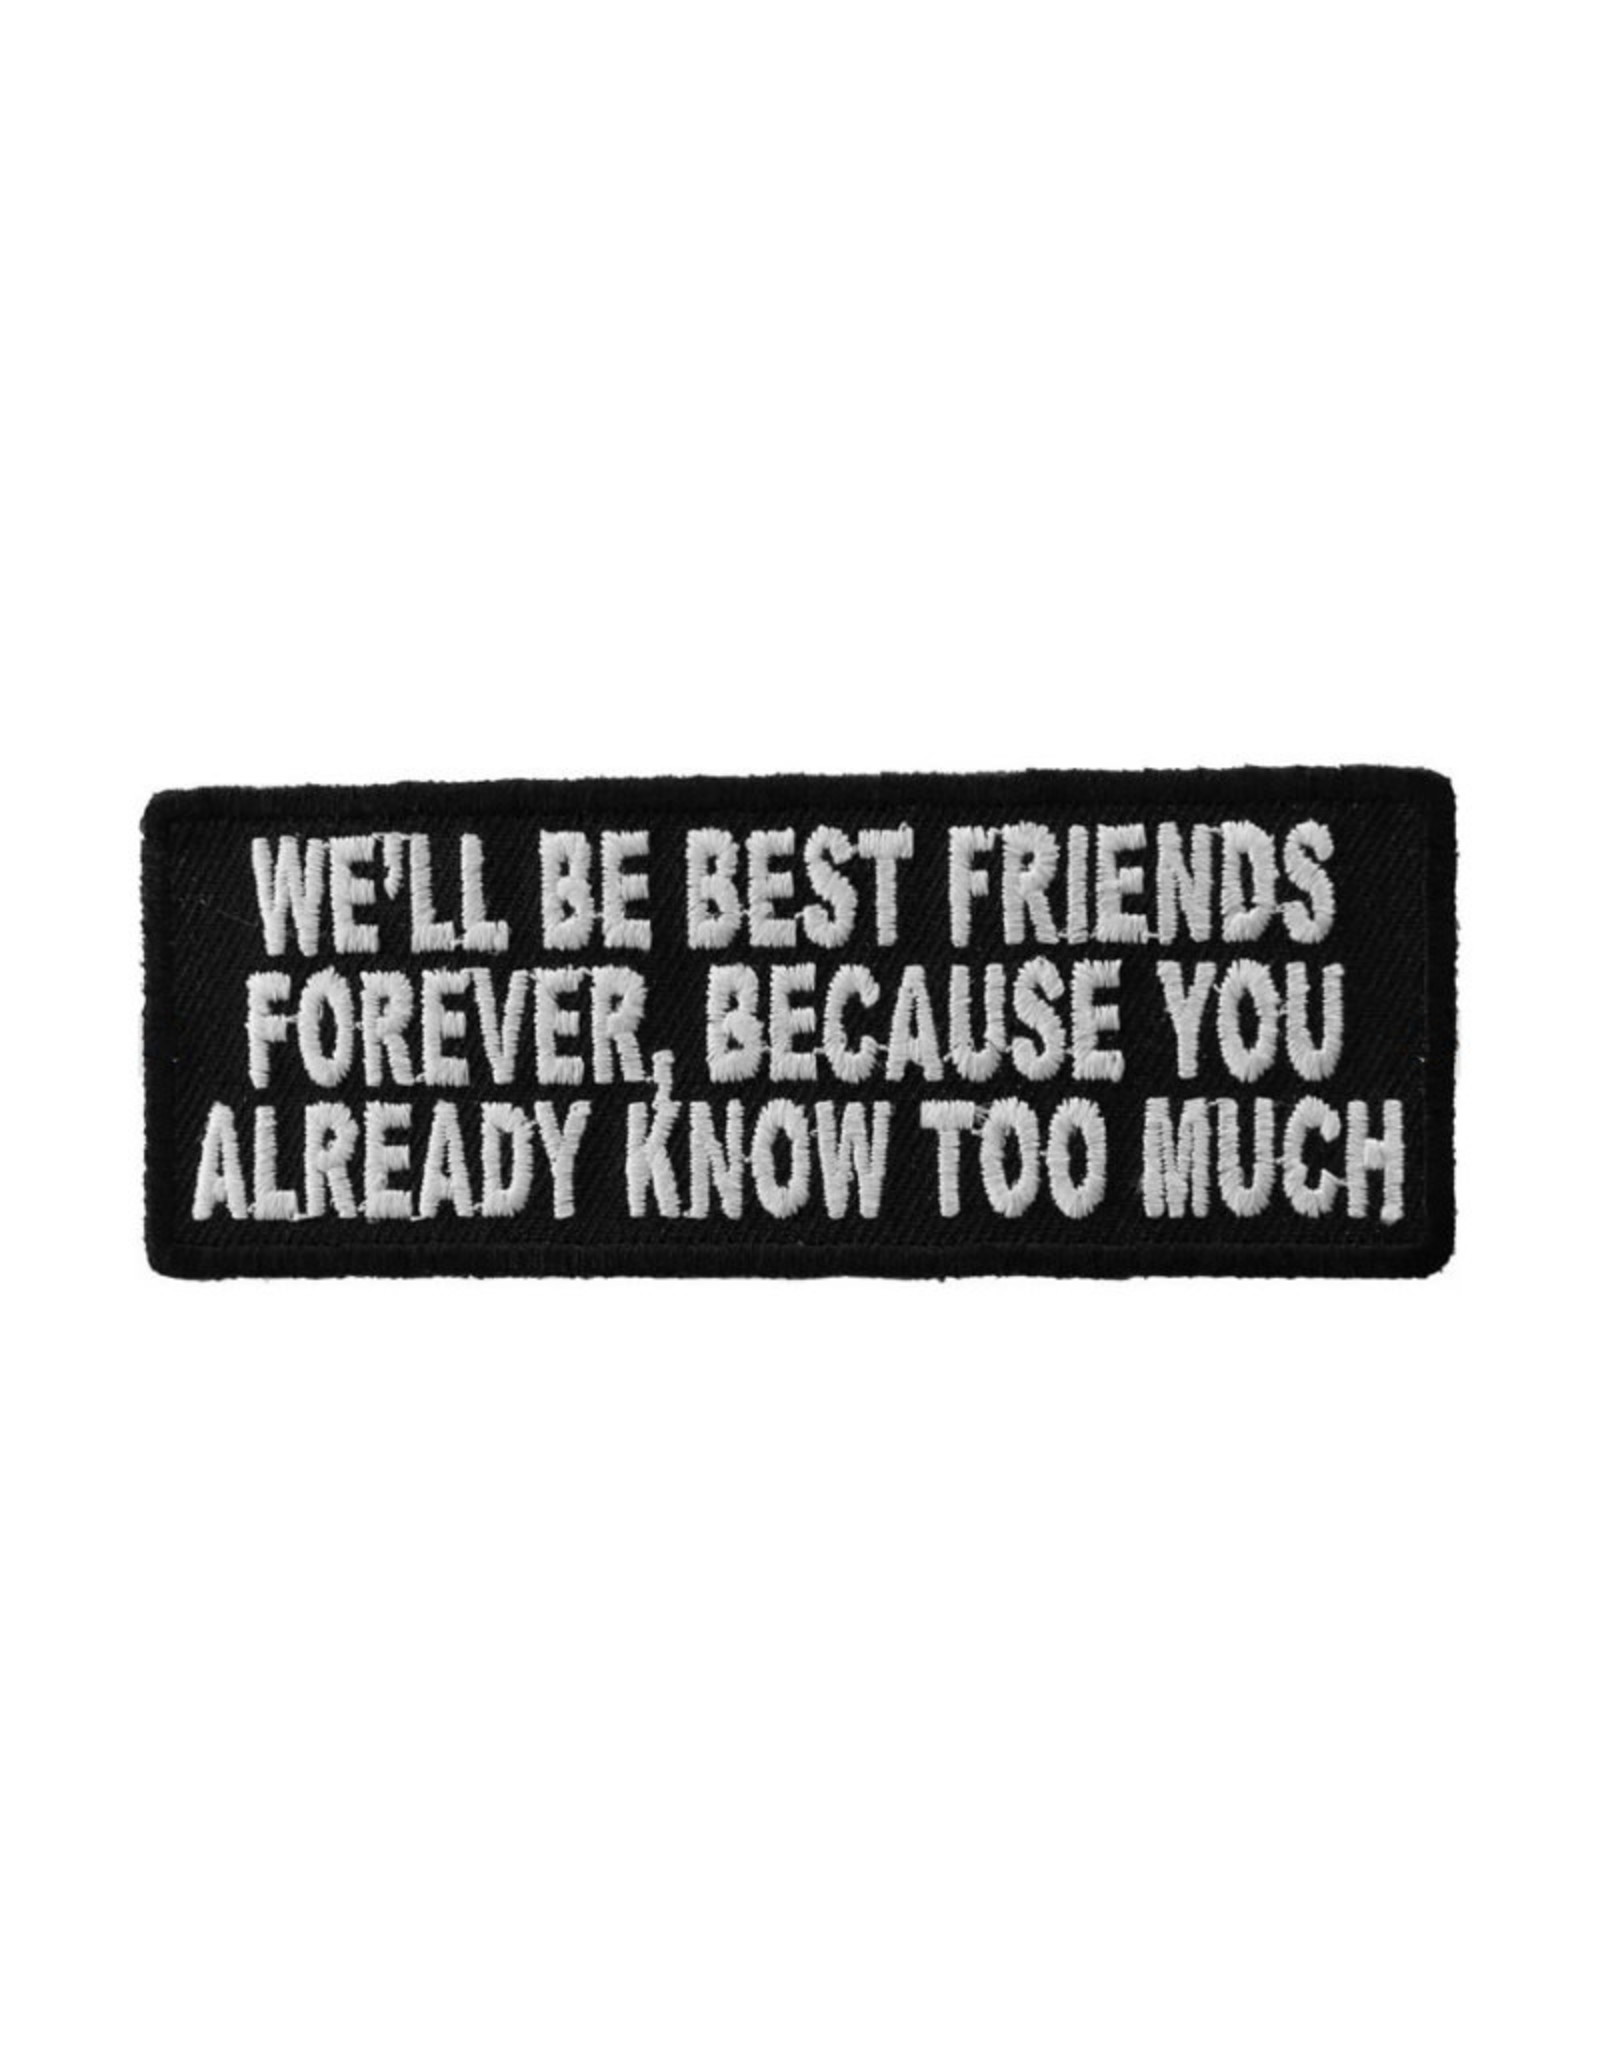 """MidMil Embroidered We'll be best friends forever because you already know too much Patch 4"""" wide x 1.5"""" high Black"""